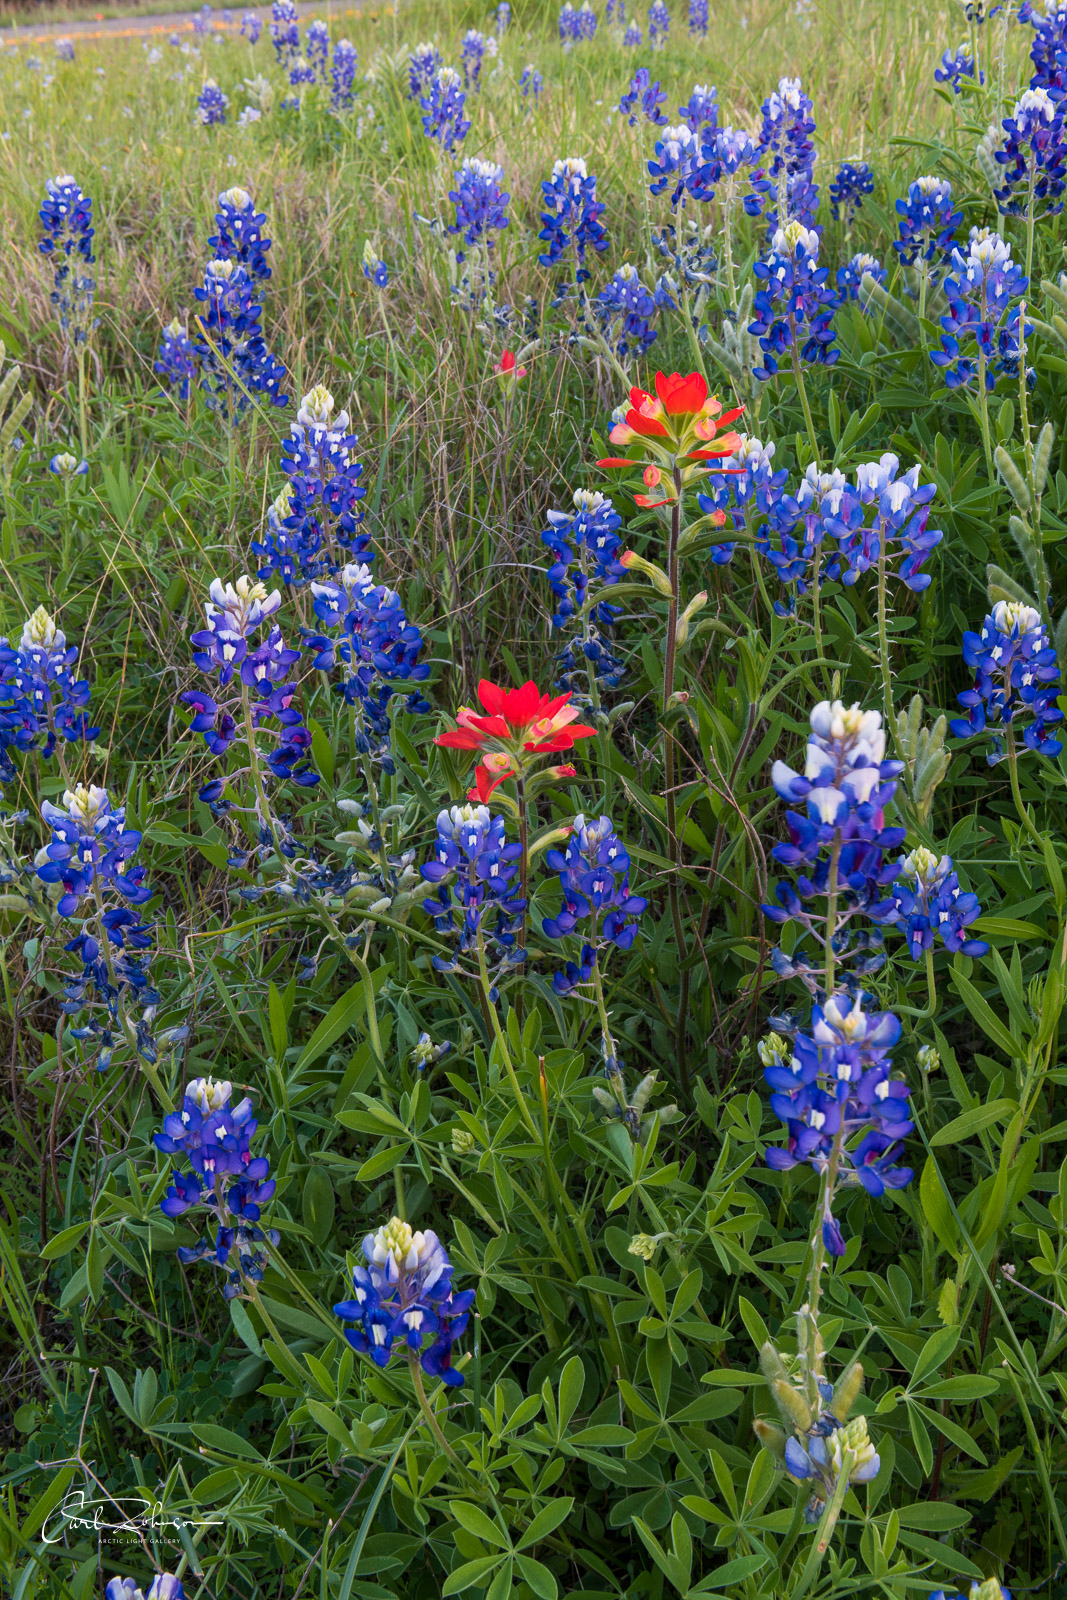 A pair of red Indian paintbrush add a pop of color to a patch of bluebonnets along Park Road 4 near Burnet, Texas.